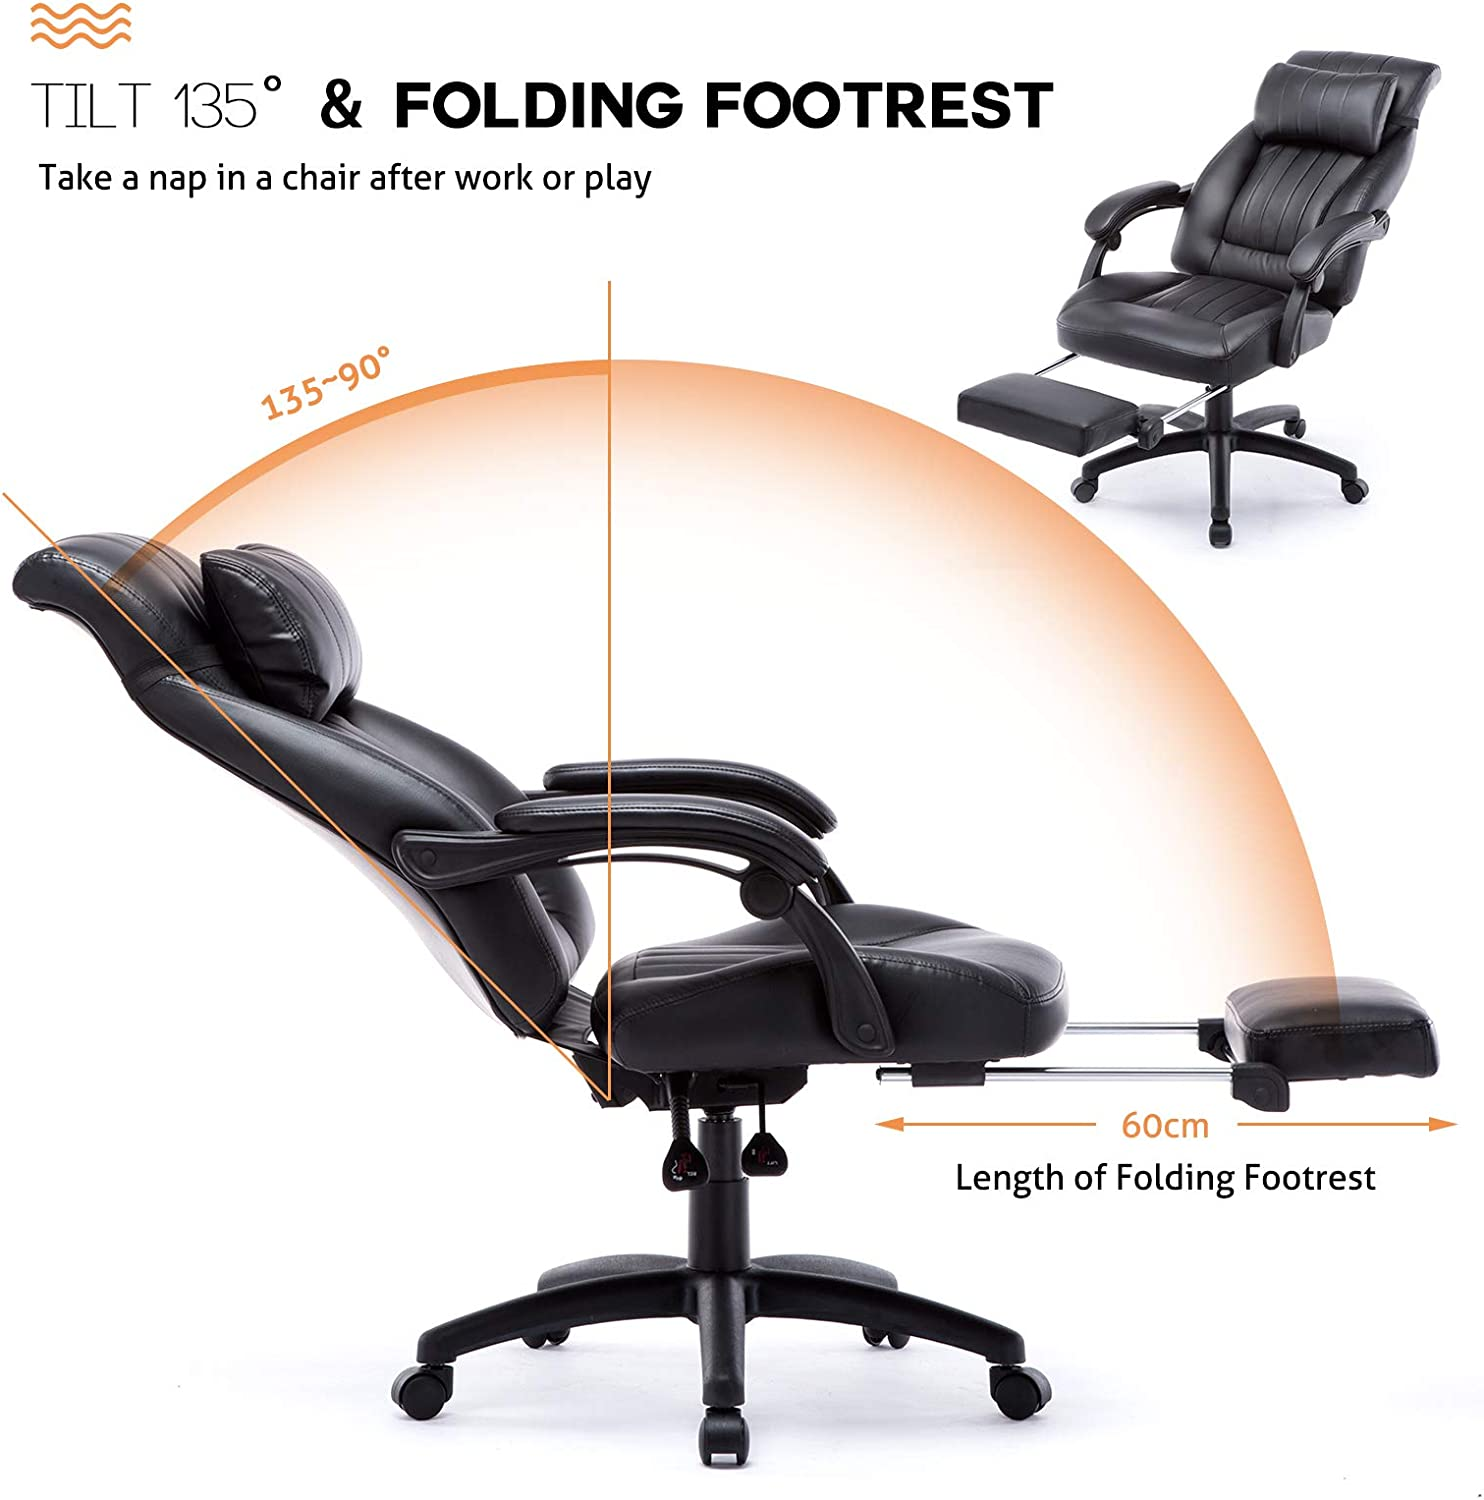 Top 5 Executive Office Chairs With Reclining Function And Retractable Footrest For Home Office Thecareercafe Co Uk